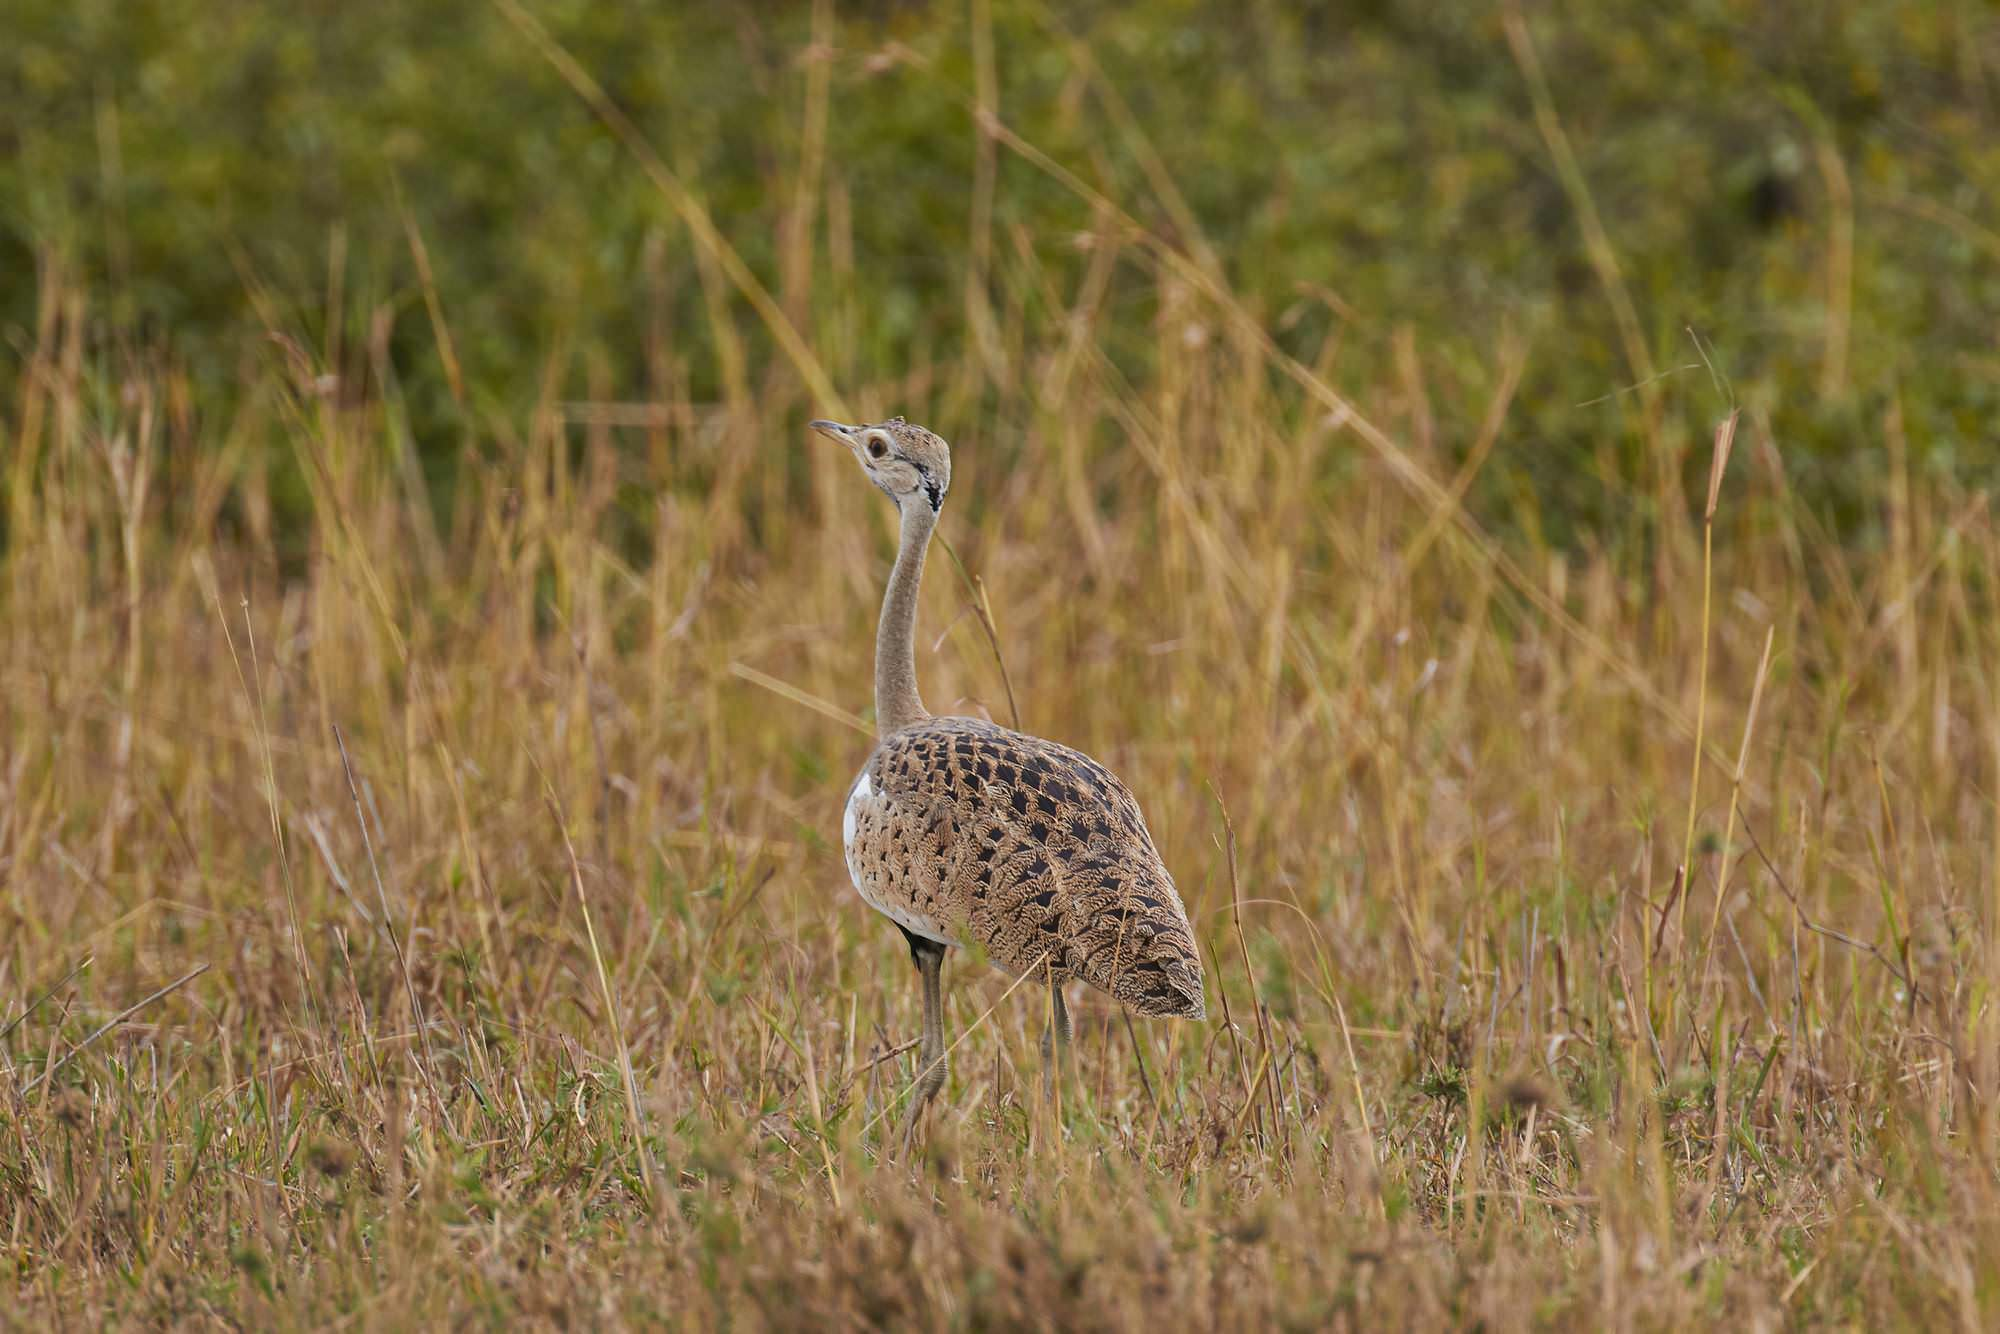 Black Bellied Bustard